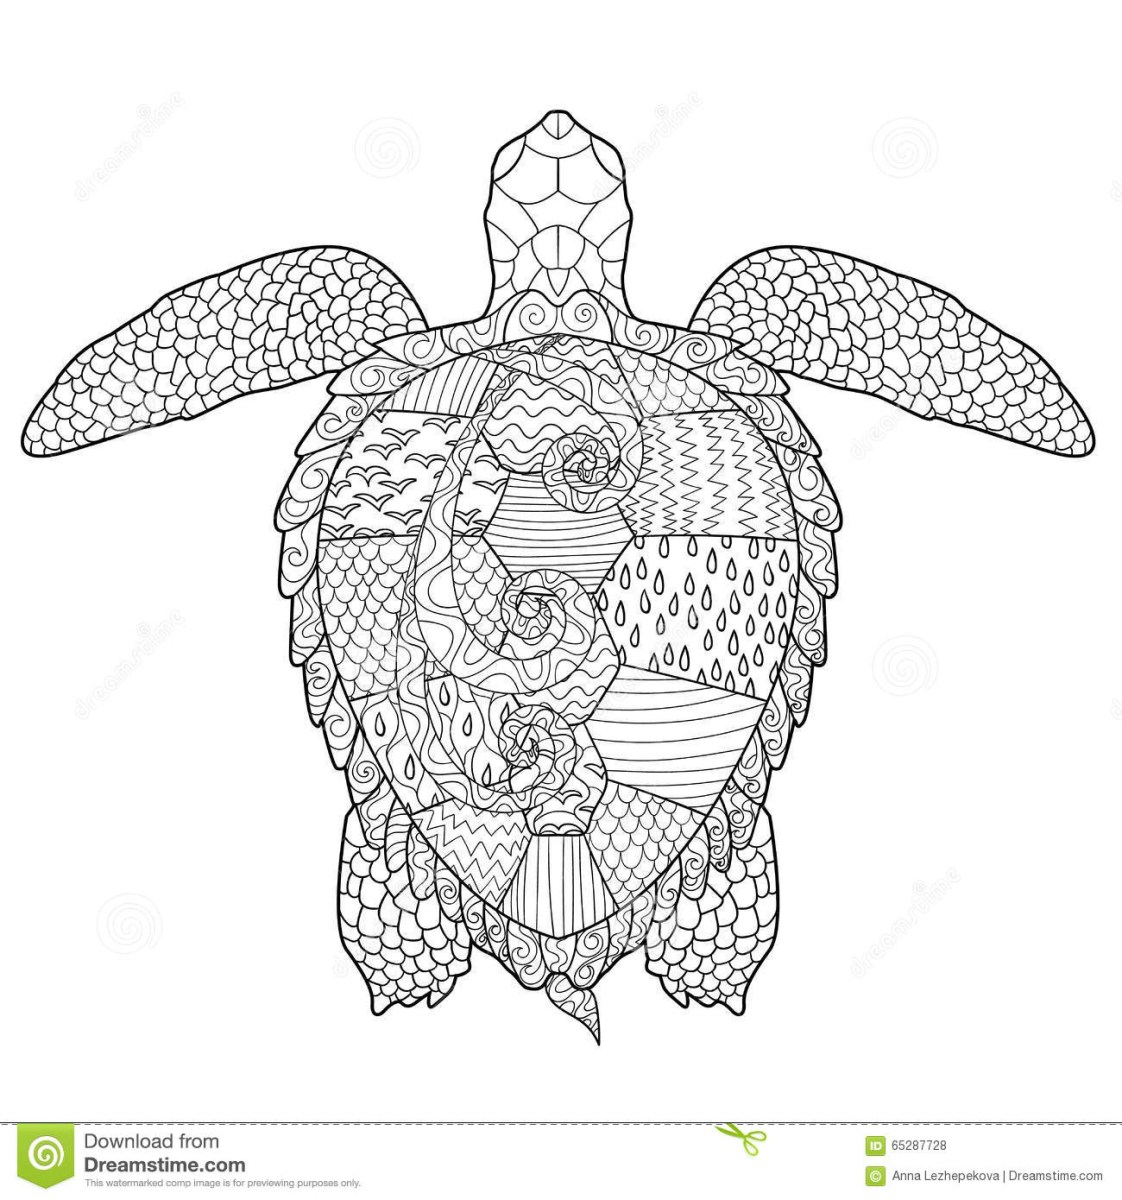 Turtles - Free printable Coloring pages for kids   1200x1122